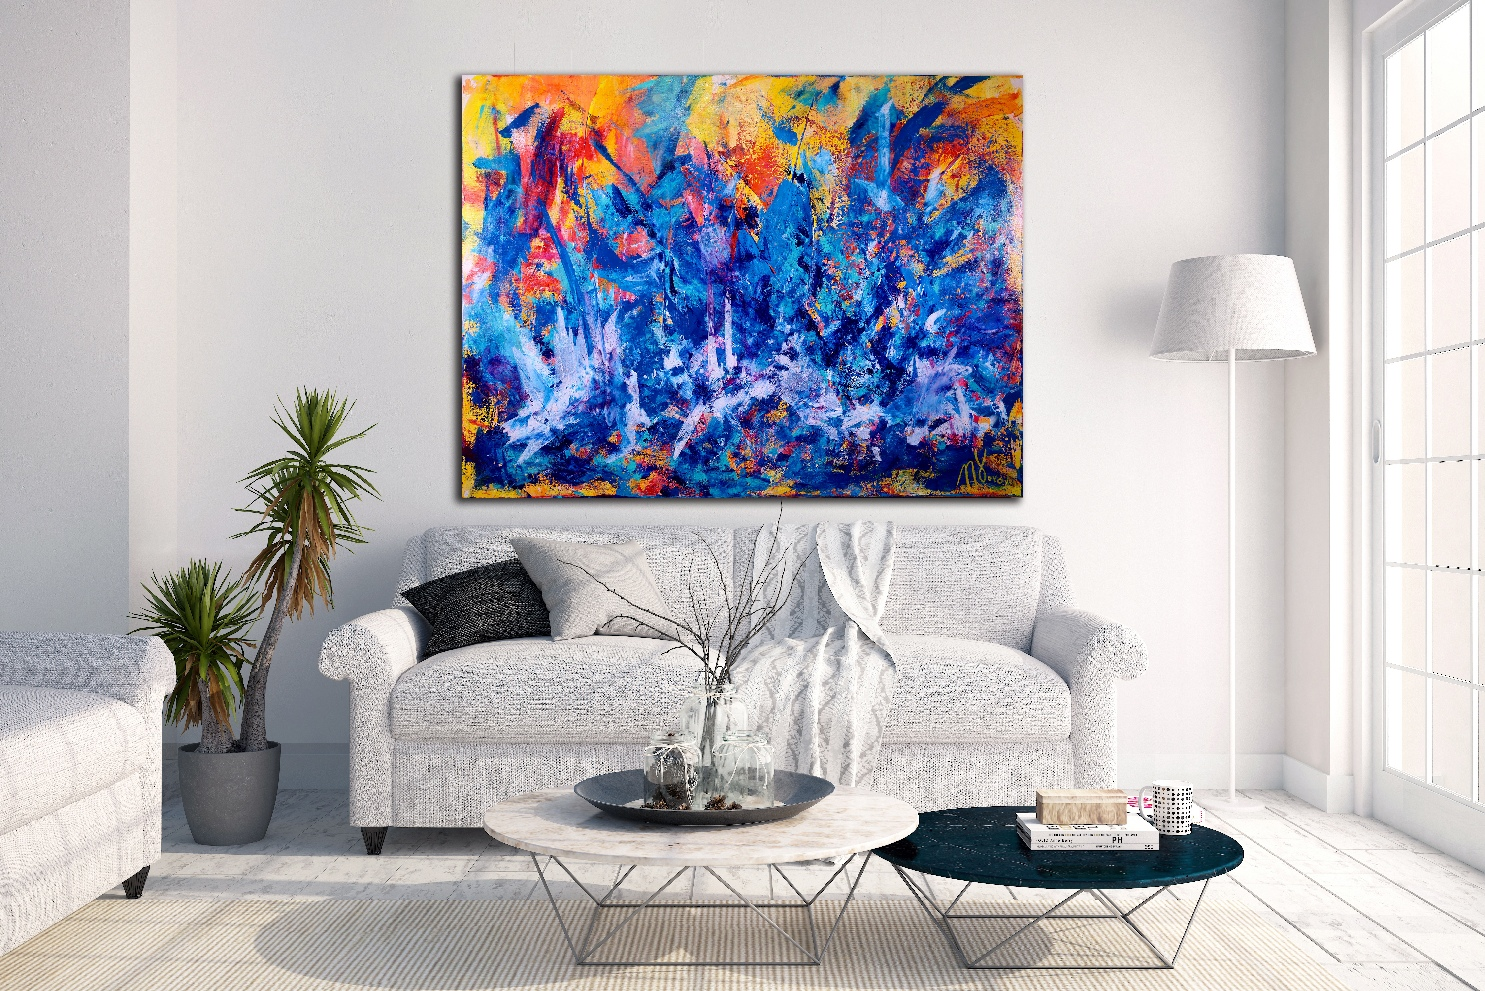 SOLD - The Faces of Blue by Nestor Toro